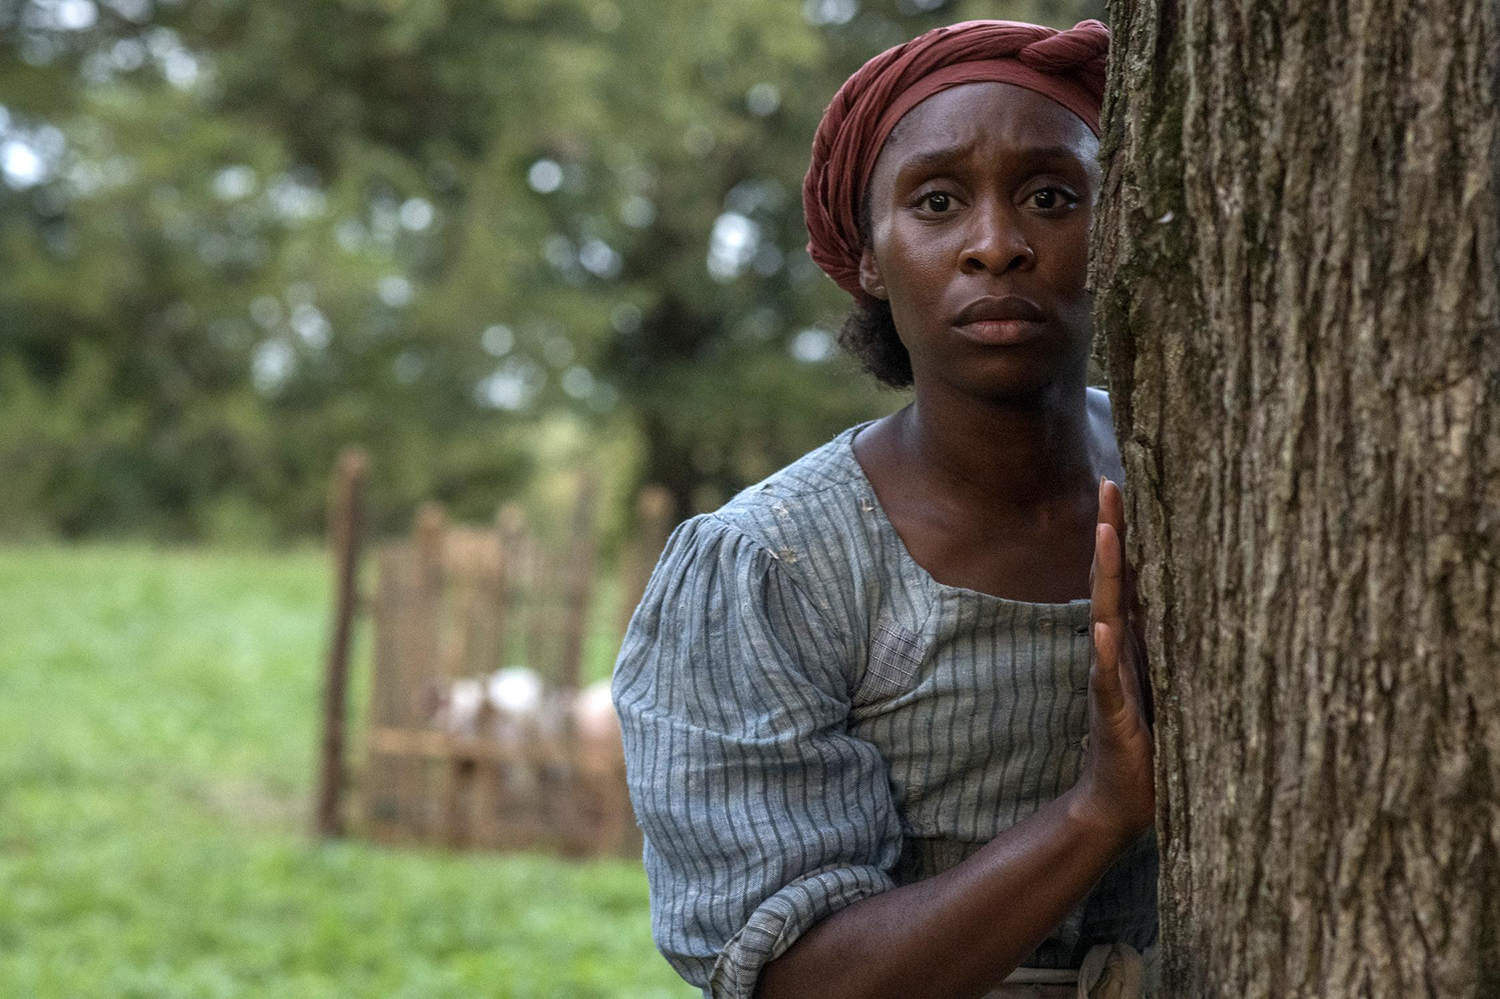 """This image released by Focus Features shows Cynthia Erivo as Harriet Tubman in a scene from """"Harriet,"""" in theaters on Nov. 1."""